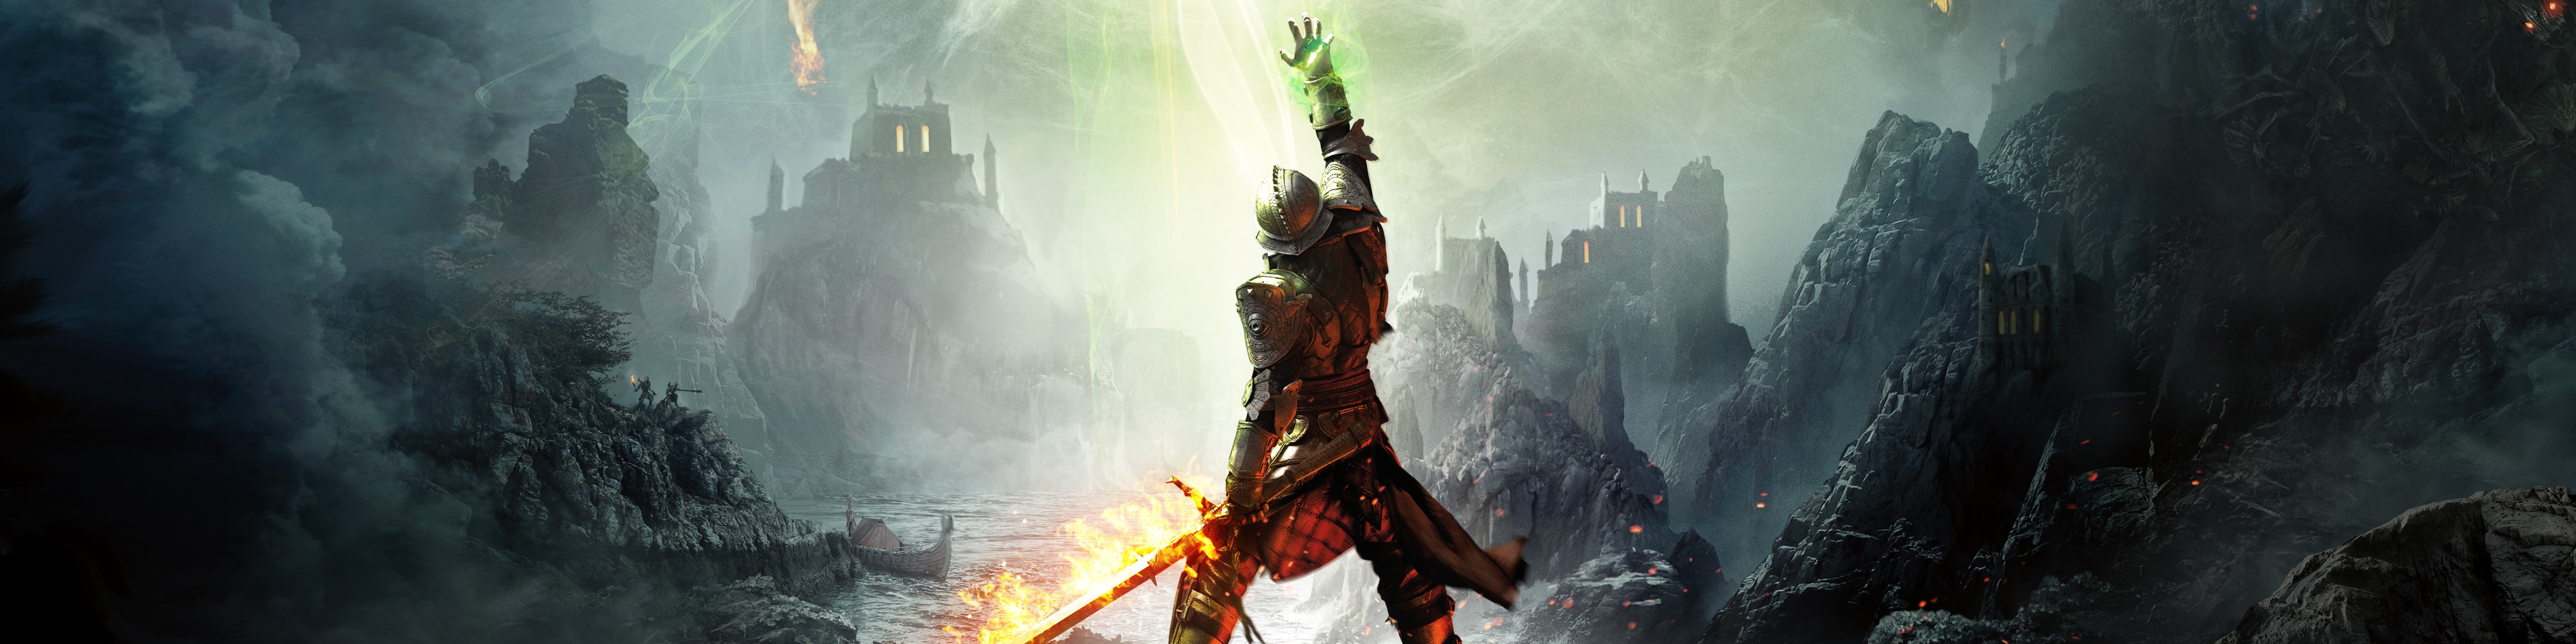 Dragon Age: Inquisition: Where To Find All Ten Dragons ...